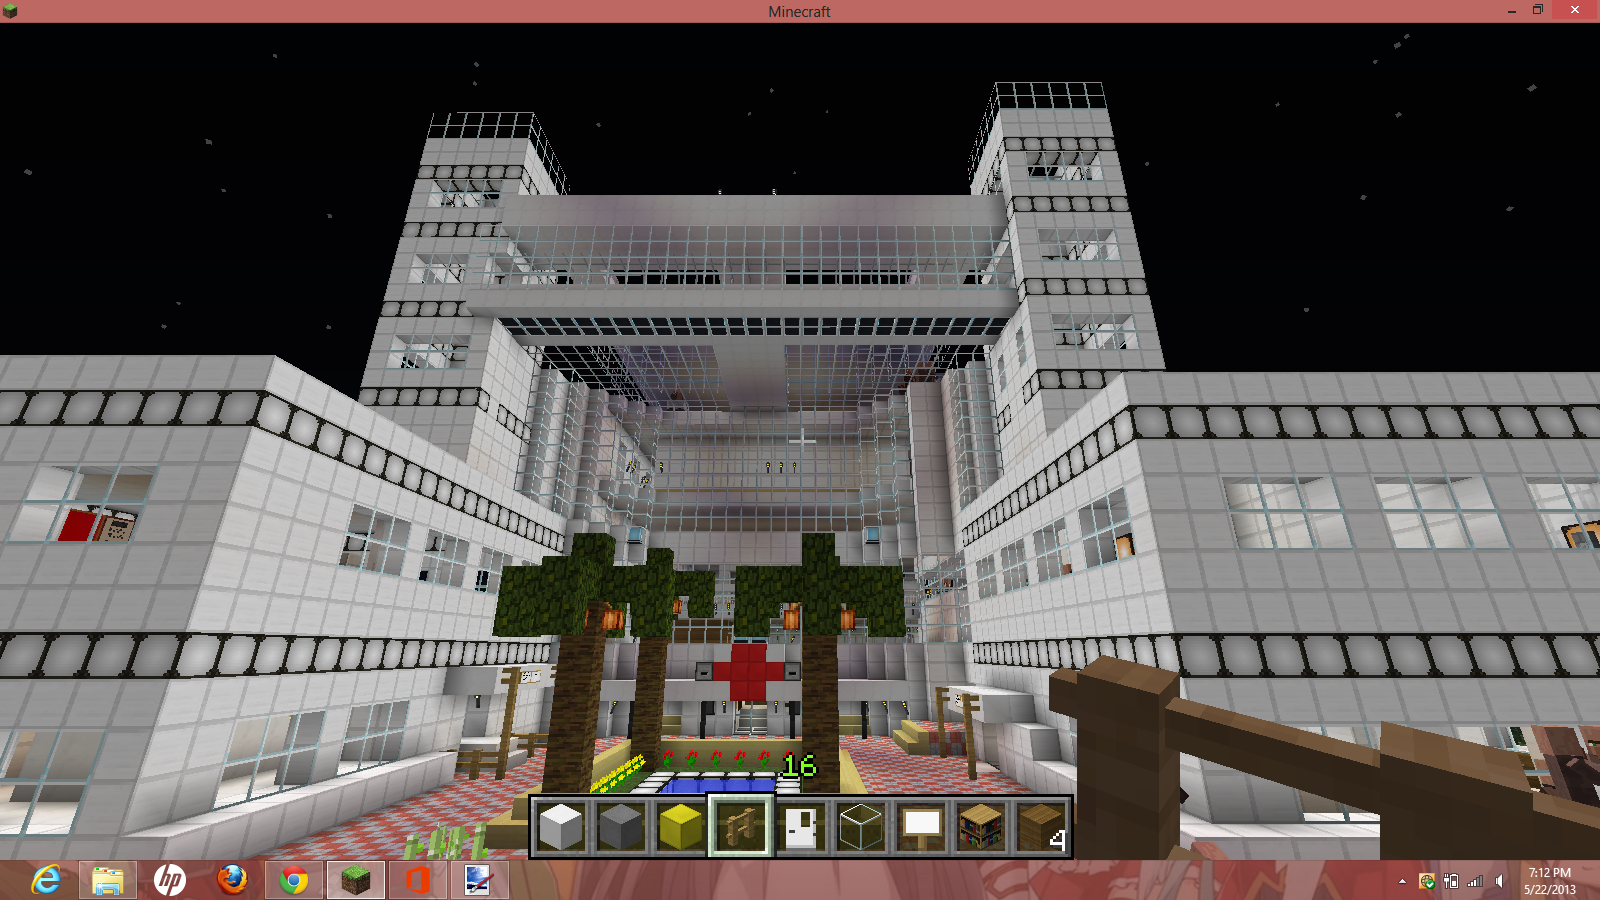 Minecraft Hospital.png - Hospital PNG HD Images